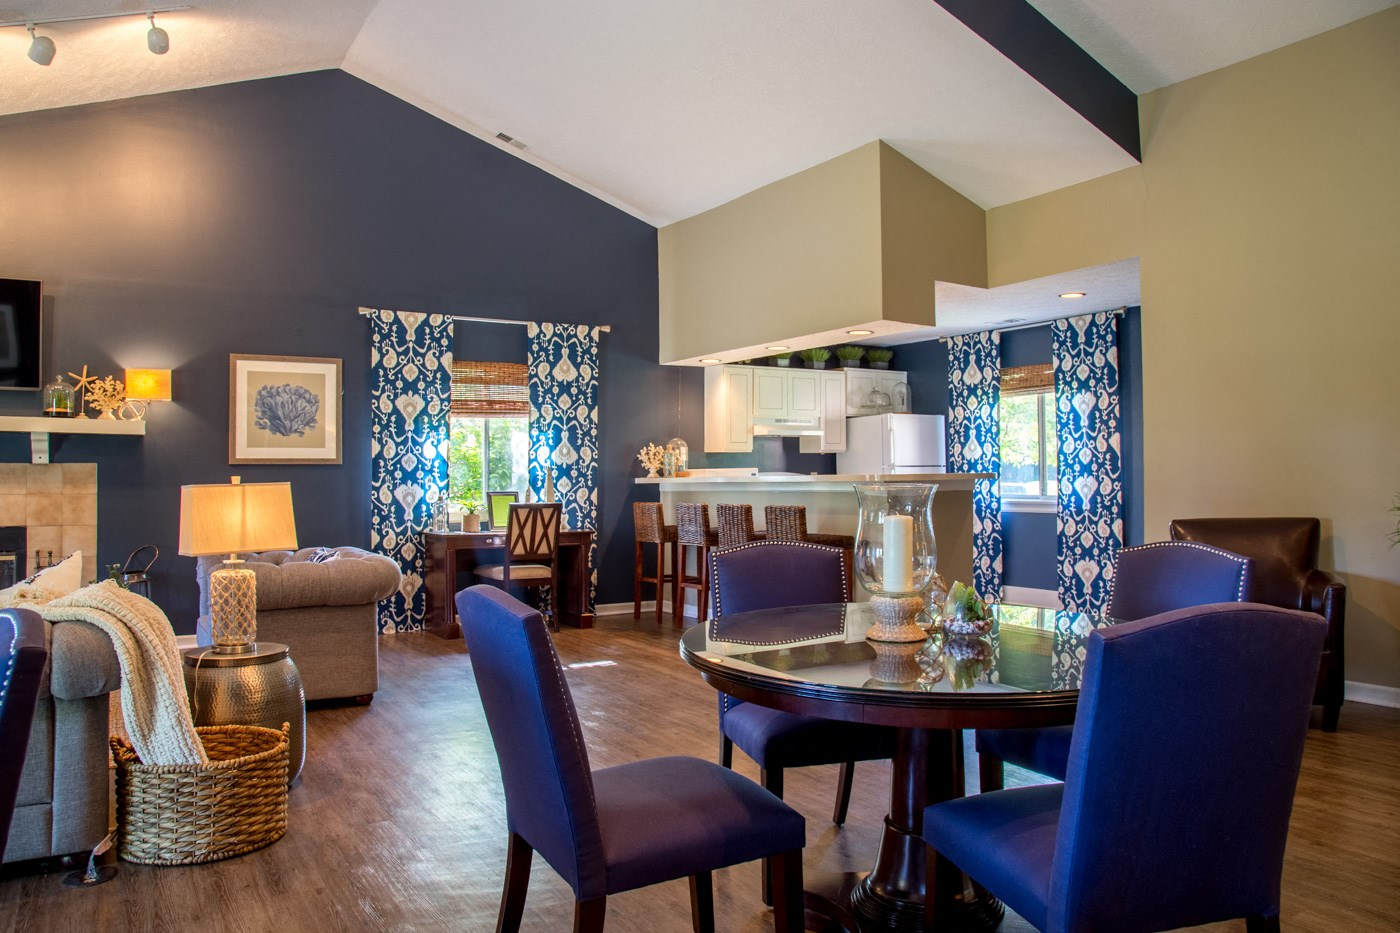 Clubhouse amenity with blue chairs